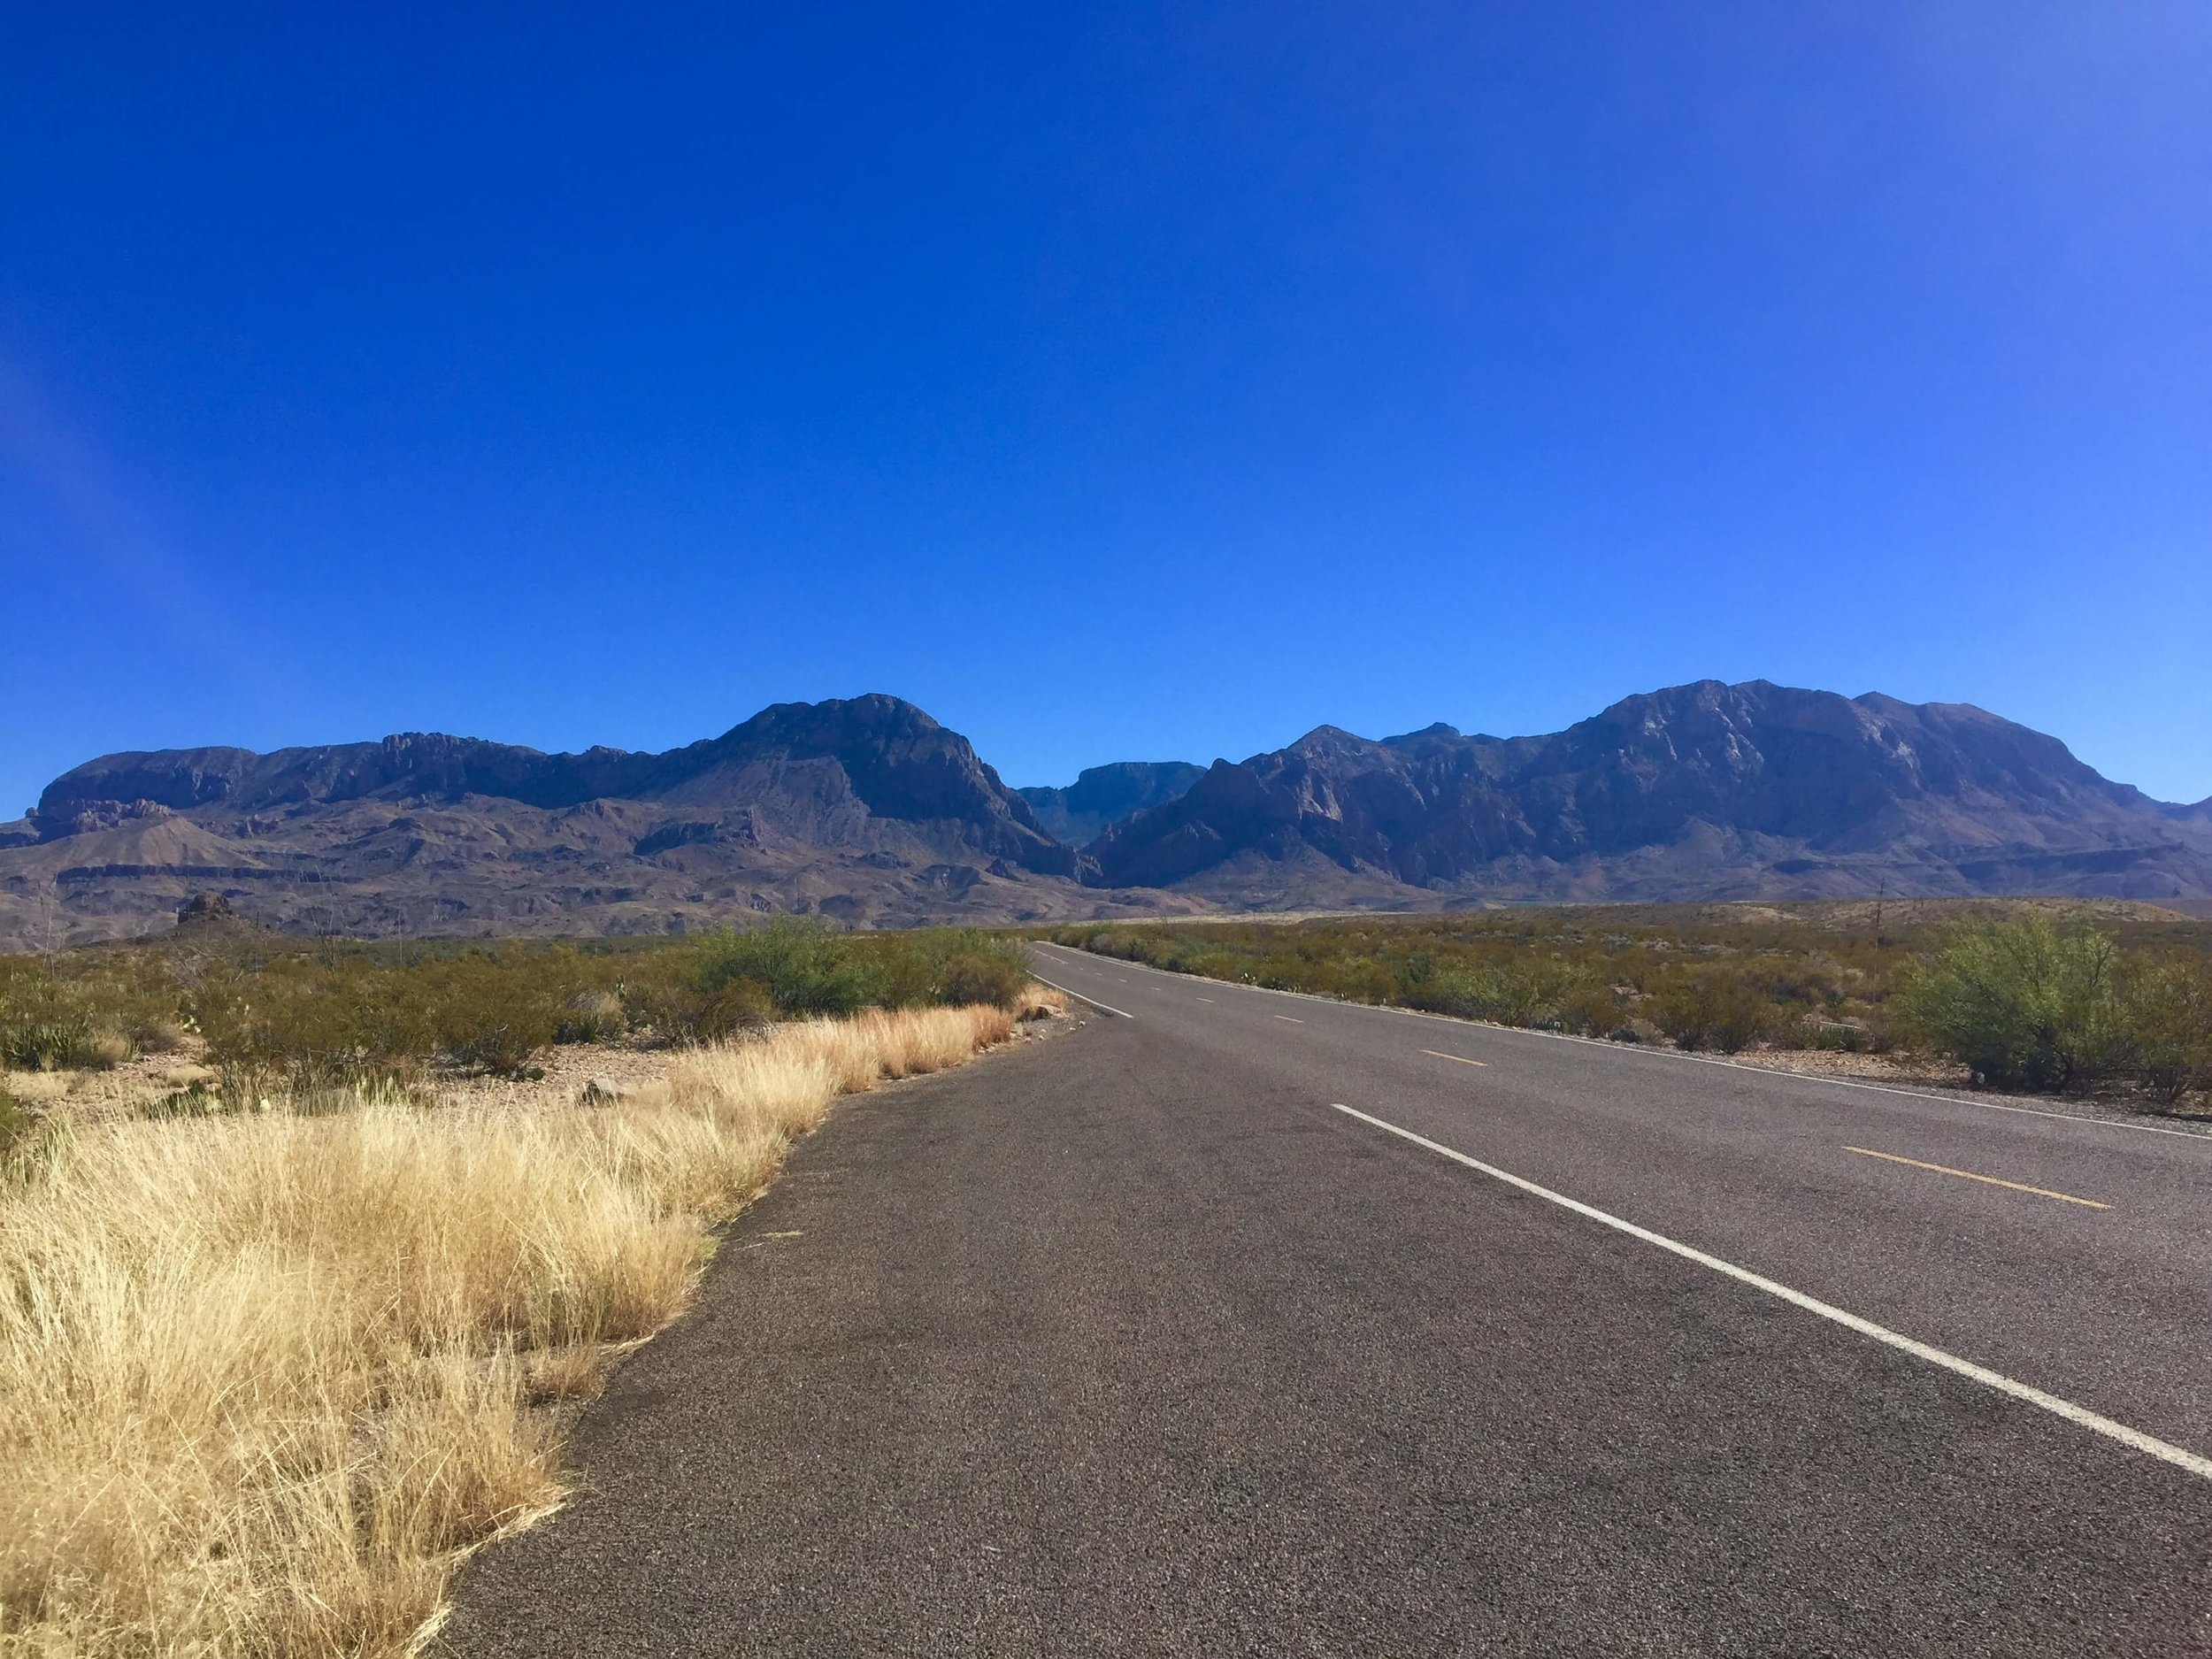 On the way in to Big Bend National Park